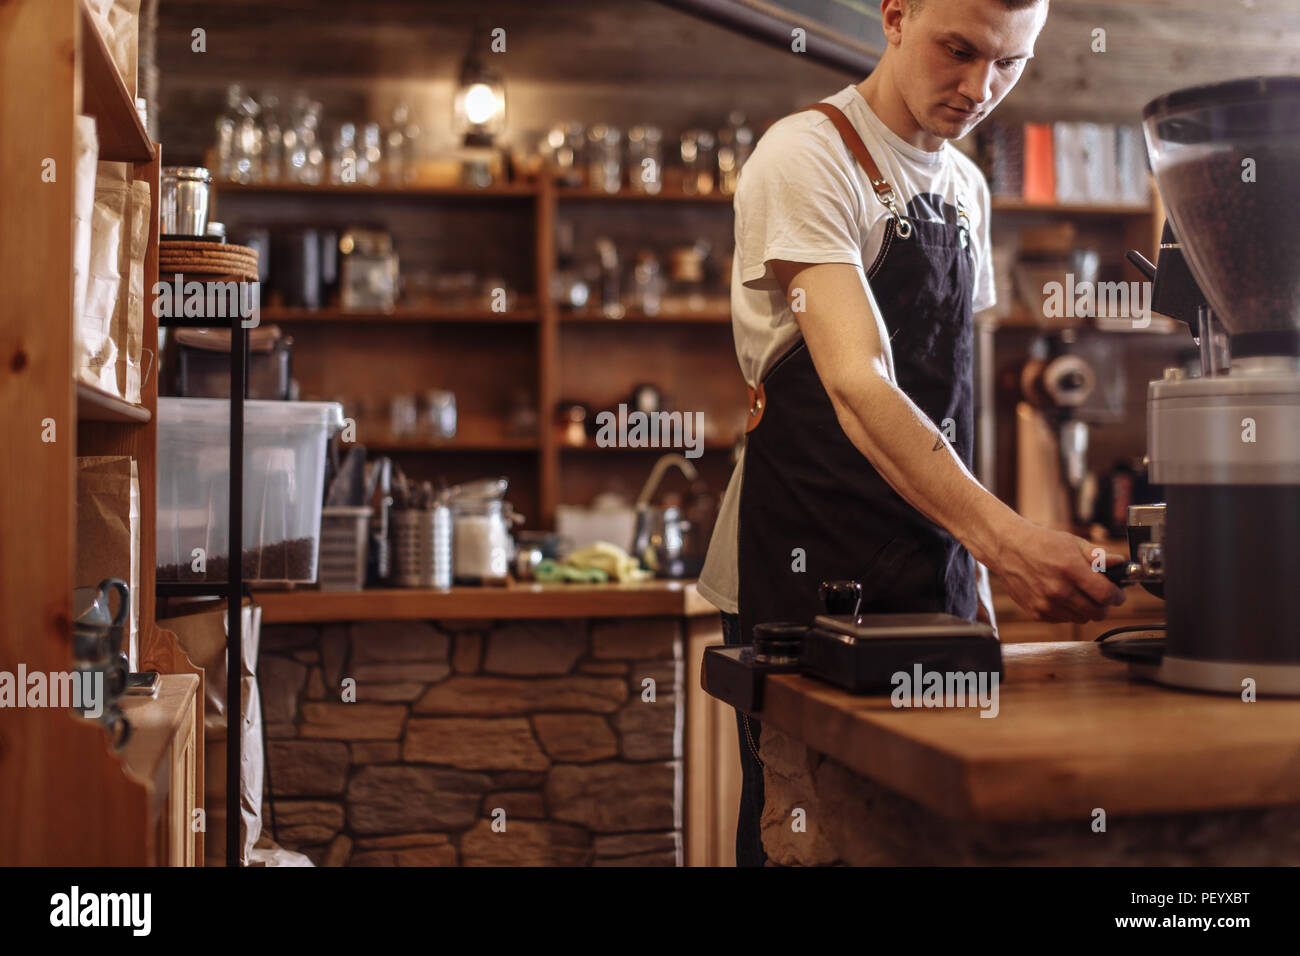 barista's working day. working hours at the cafe - Stock Image